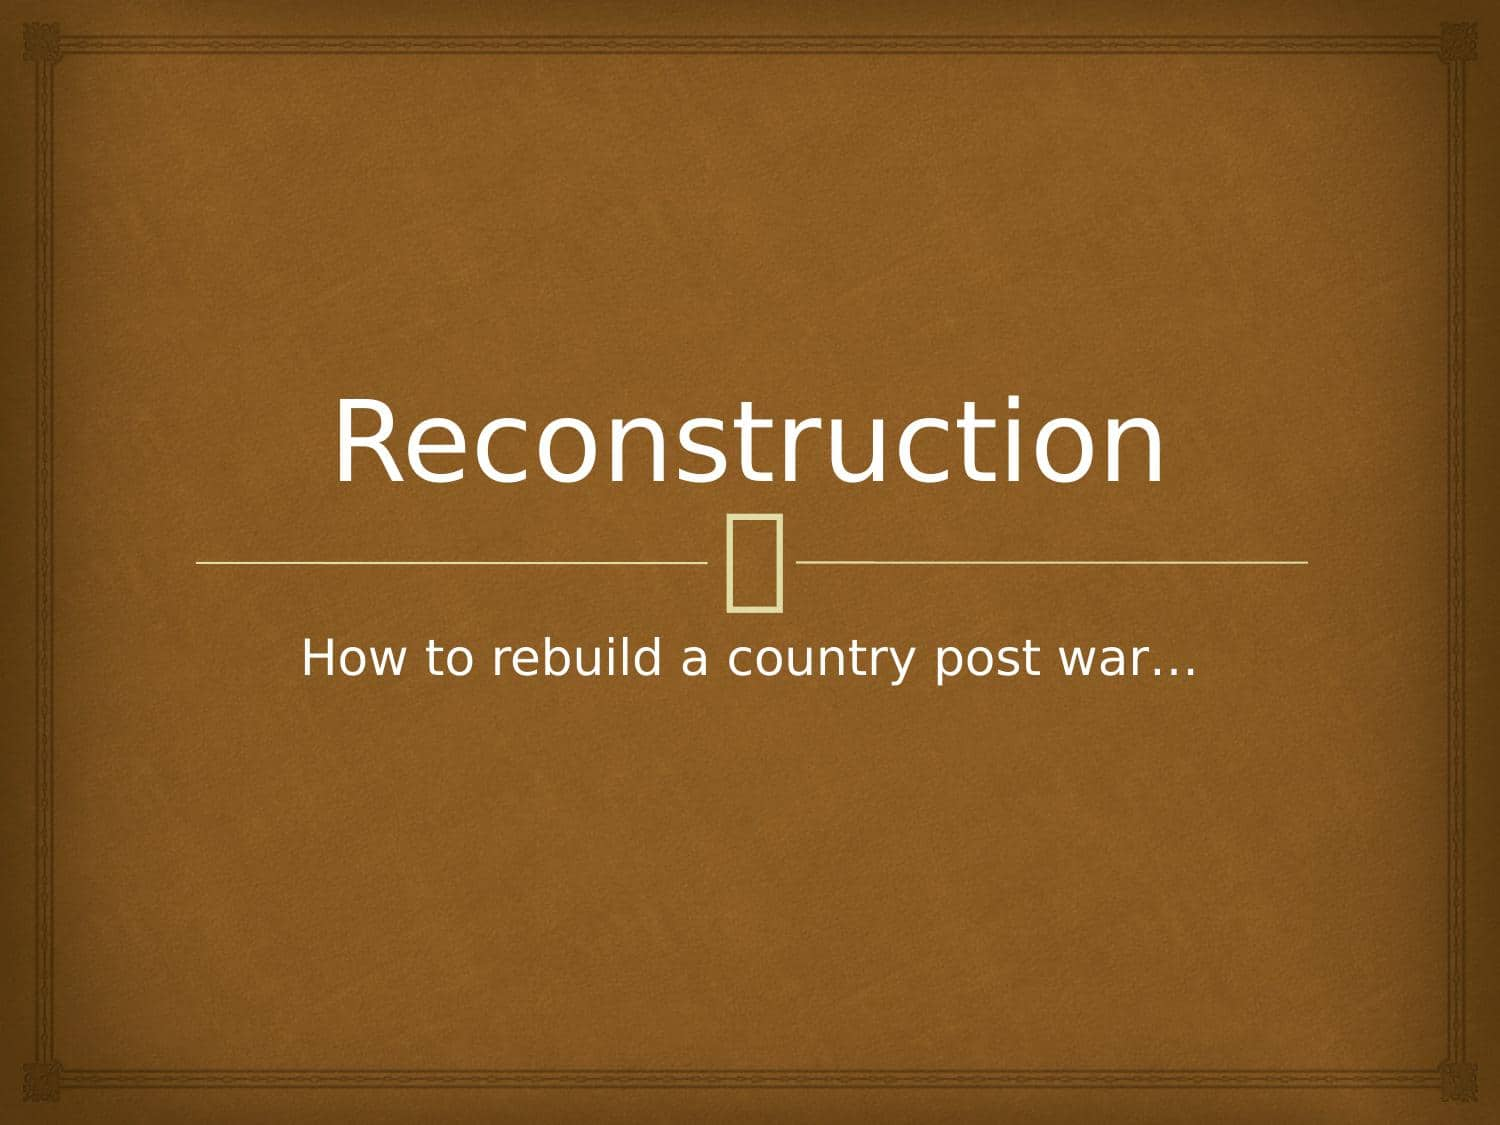 Reconstruction After The American Civil War